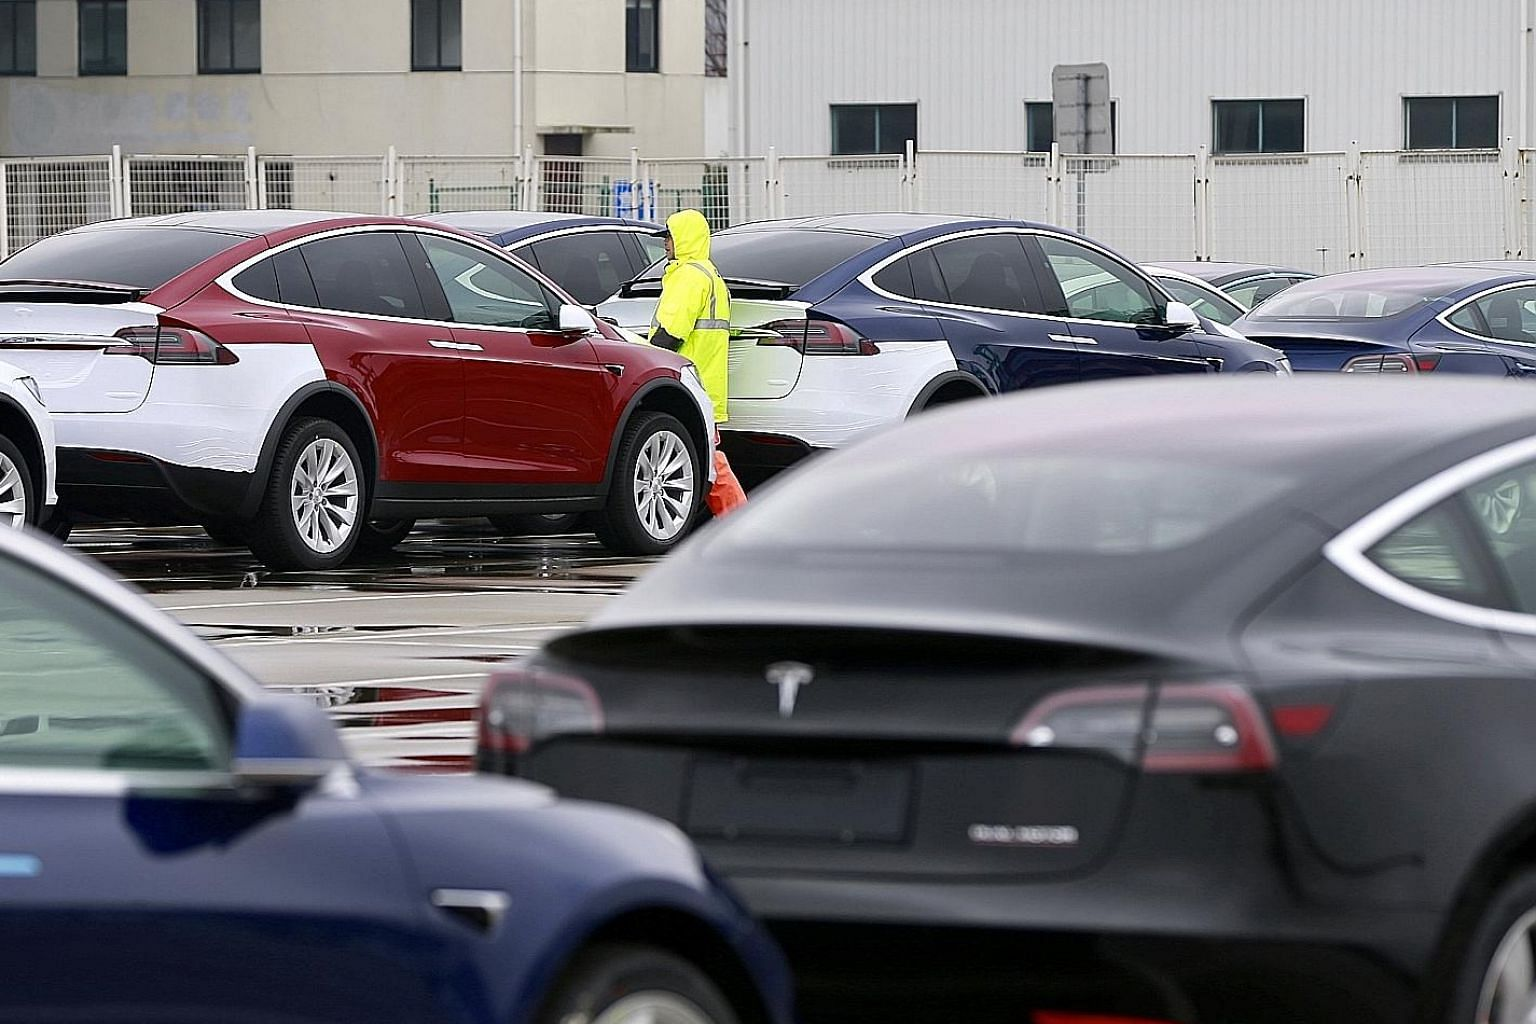 Tesla cars at a port in Shanghai. The US electric carmaker is popular in China - the world's biggest car market - but Chinese brands are catching up.